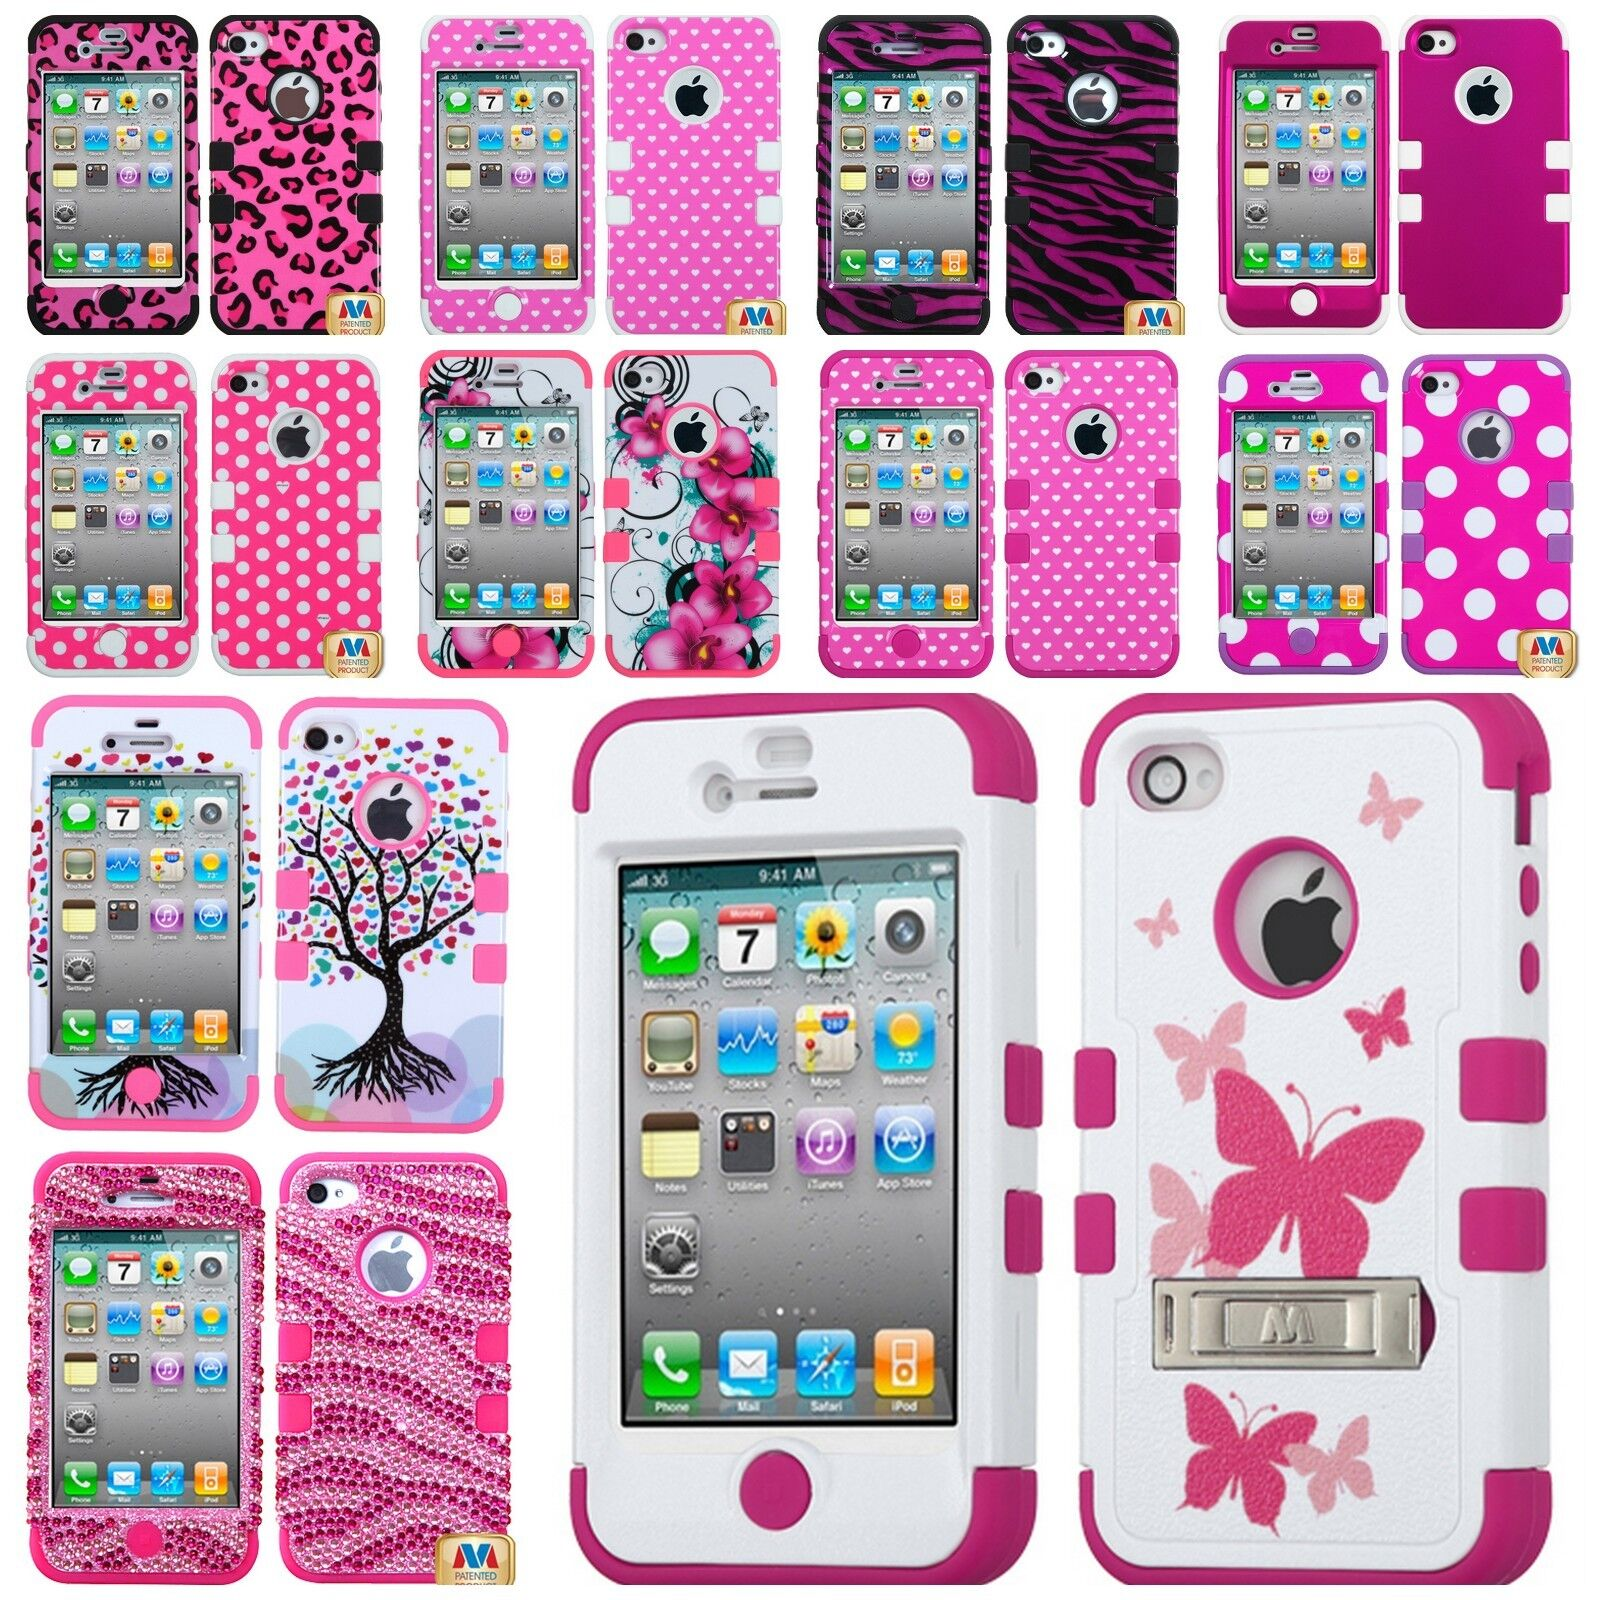 iphone 4s cases ebay for iphone 4 4g 4s amp soft rubber hybrid armor skin 14425